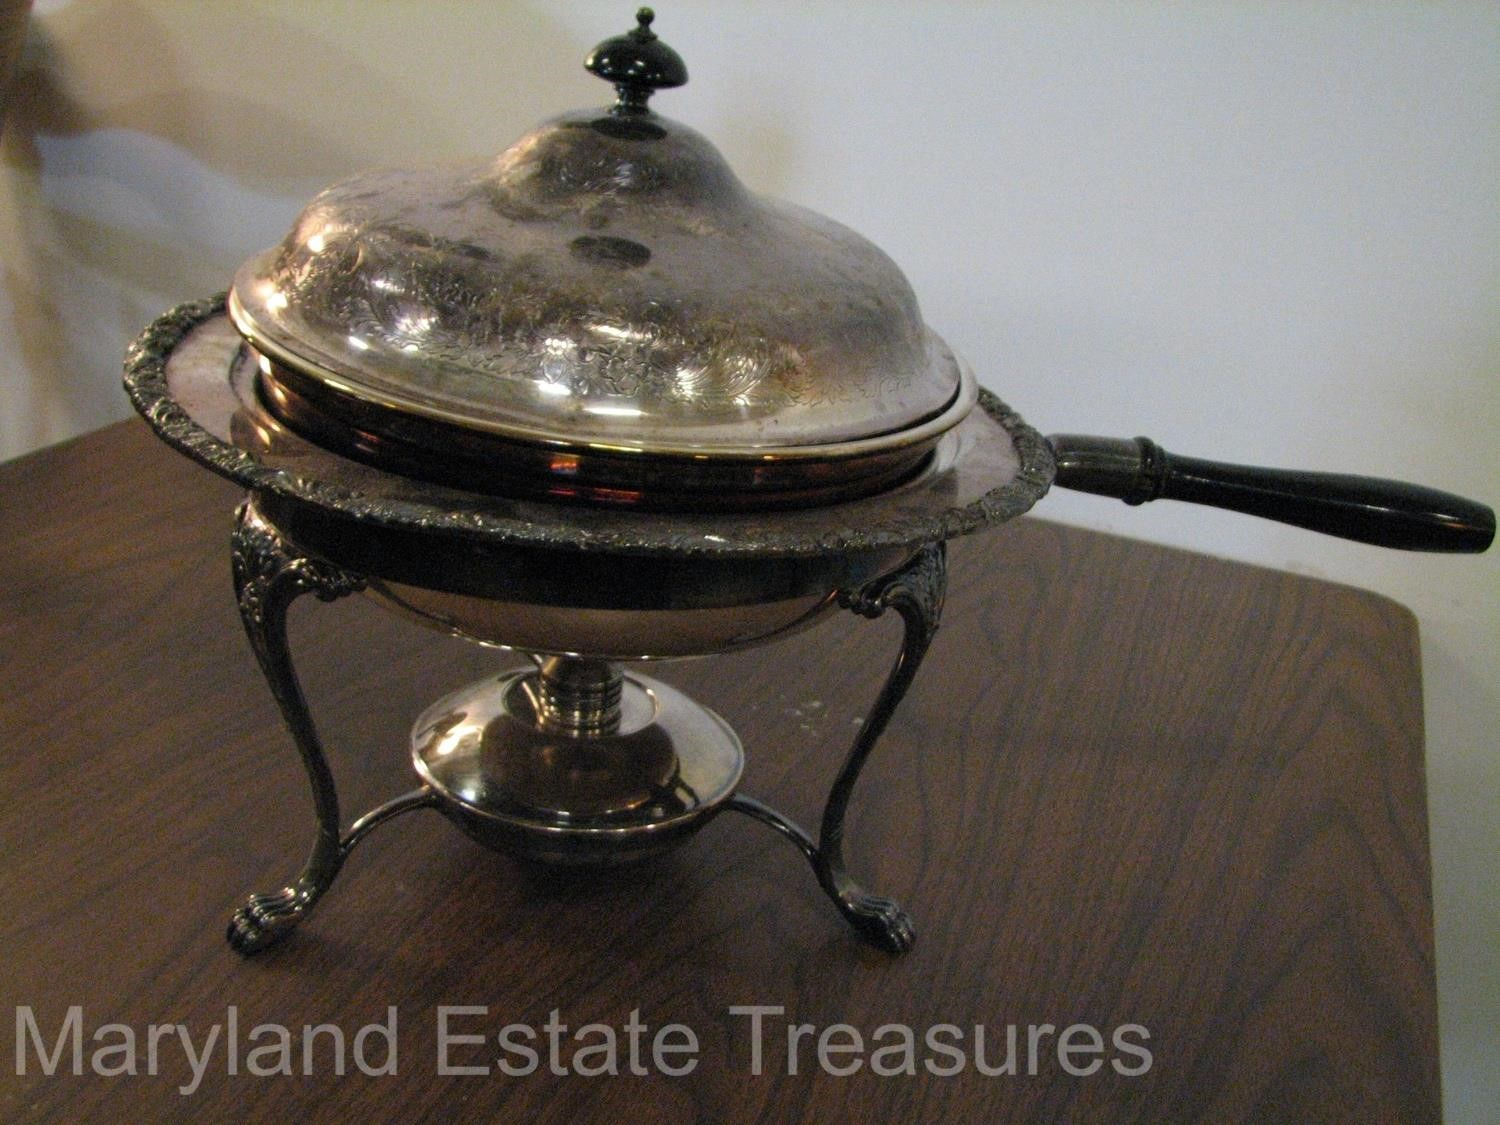 Maryland Estate Treasures September 2018 Auction